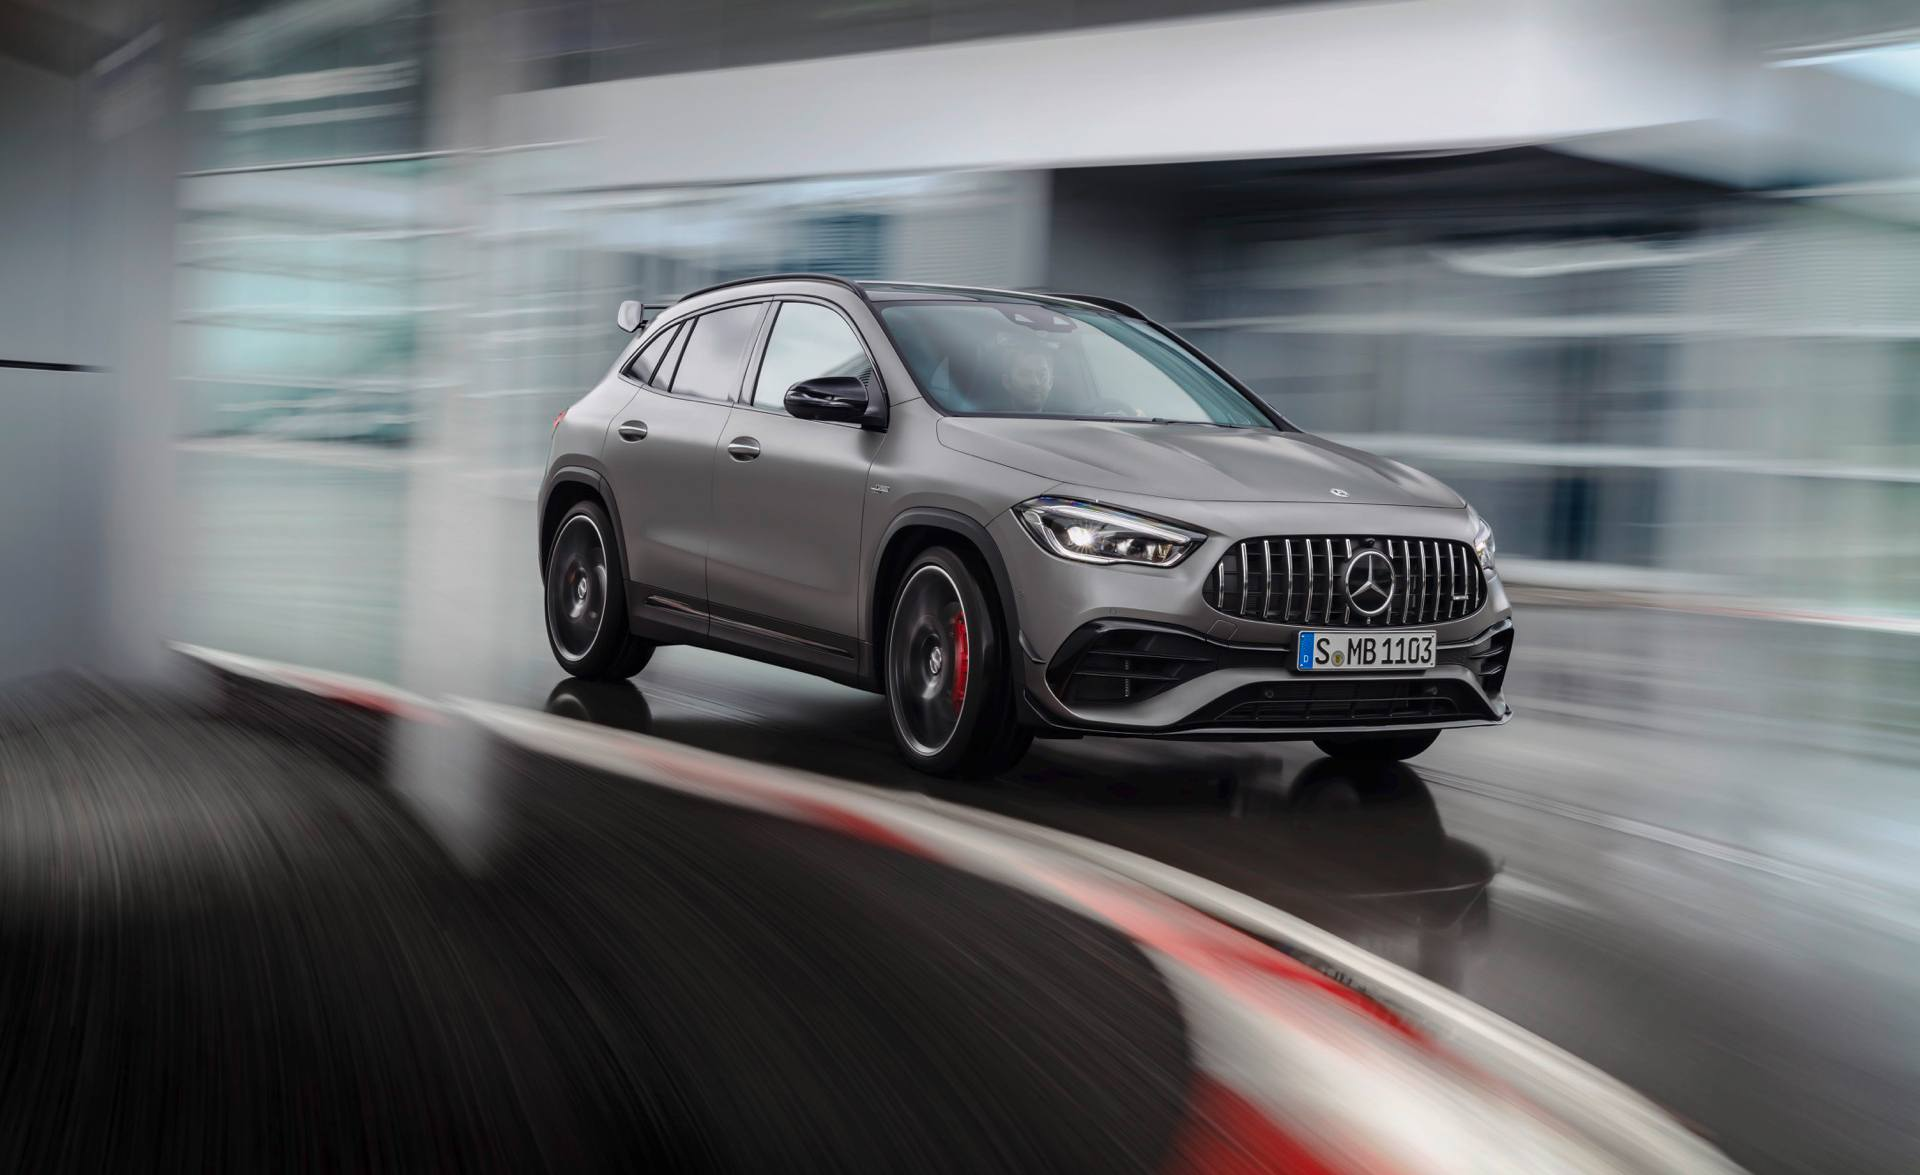 Patrick Buick Gmc >> 2021 Mercedes-AMG GLA45 Returns as Powerful Pint-Sized SUV » AutoGuide.com News